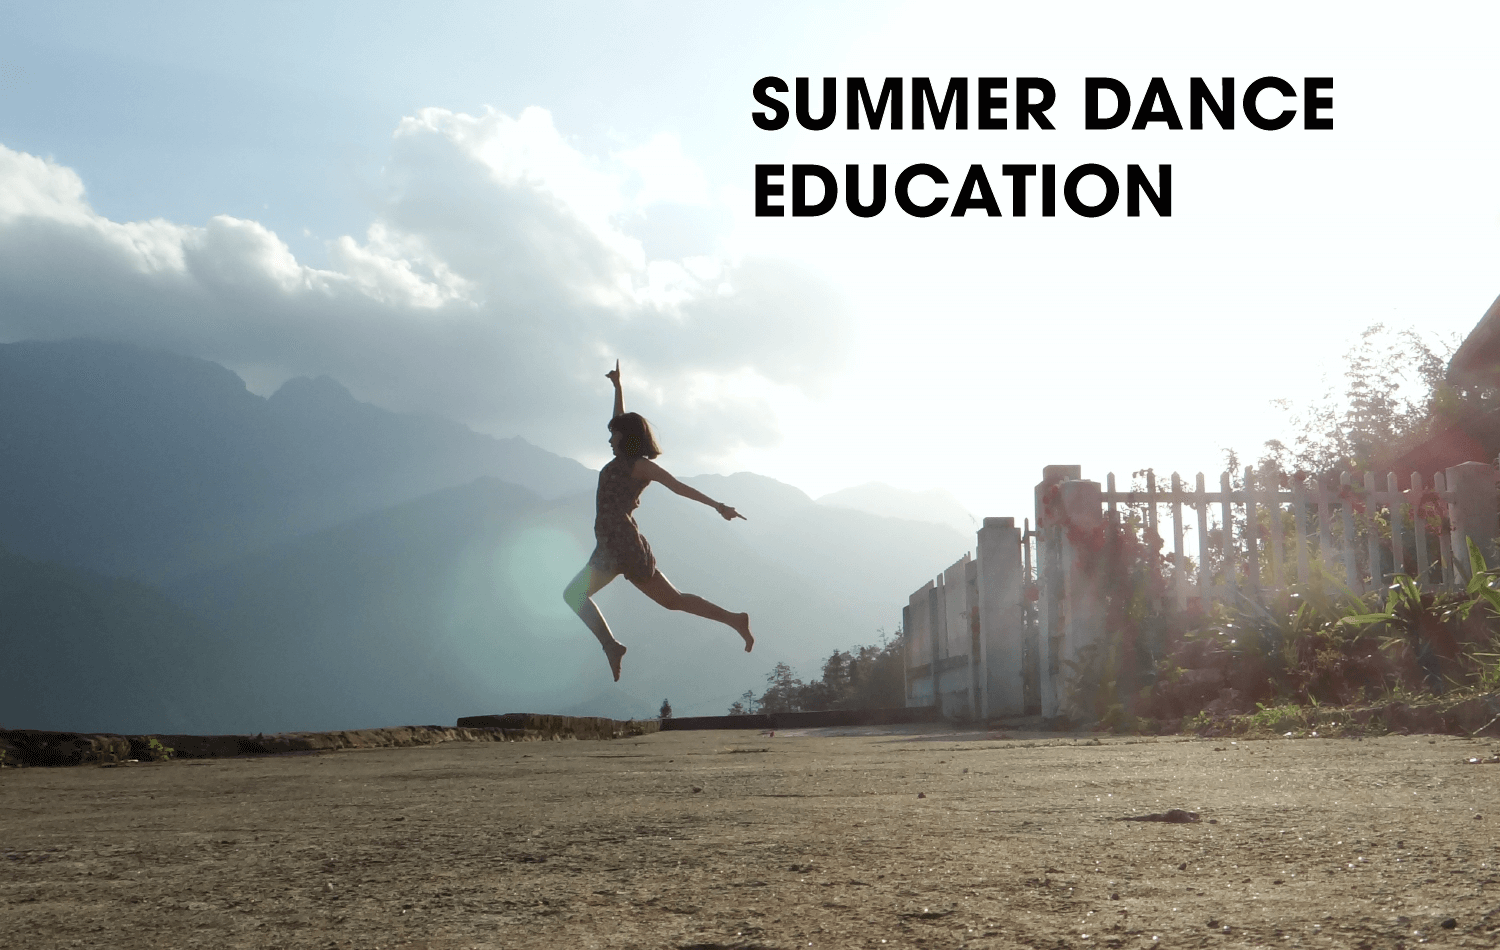 Summer Dance Salt Lake City Utah Experience Art Capitol Theatre Rose Wagner Performing Arts Center Ballet West Ririe-Woodbury Dance Company Repertory Dance Theatre